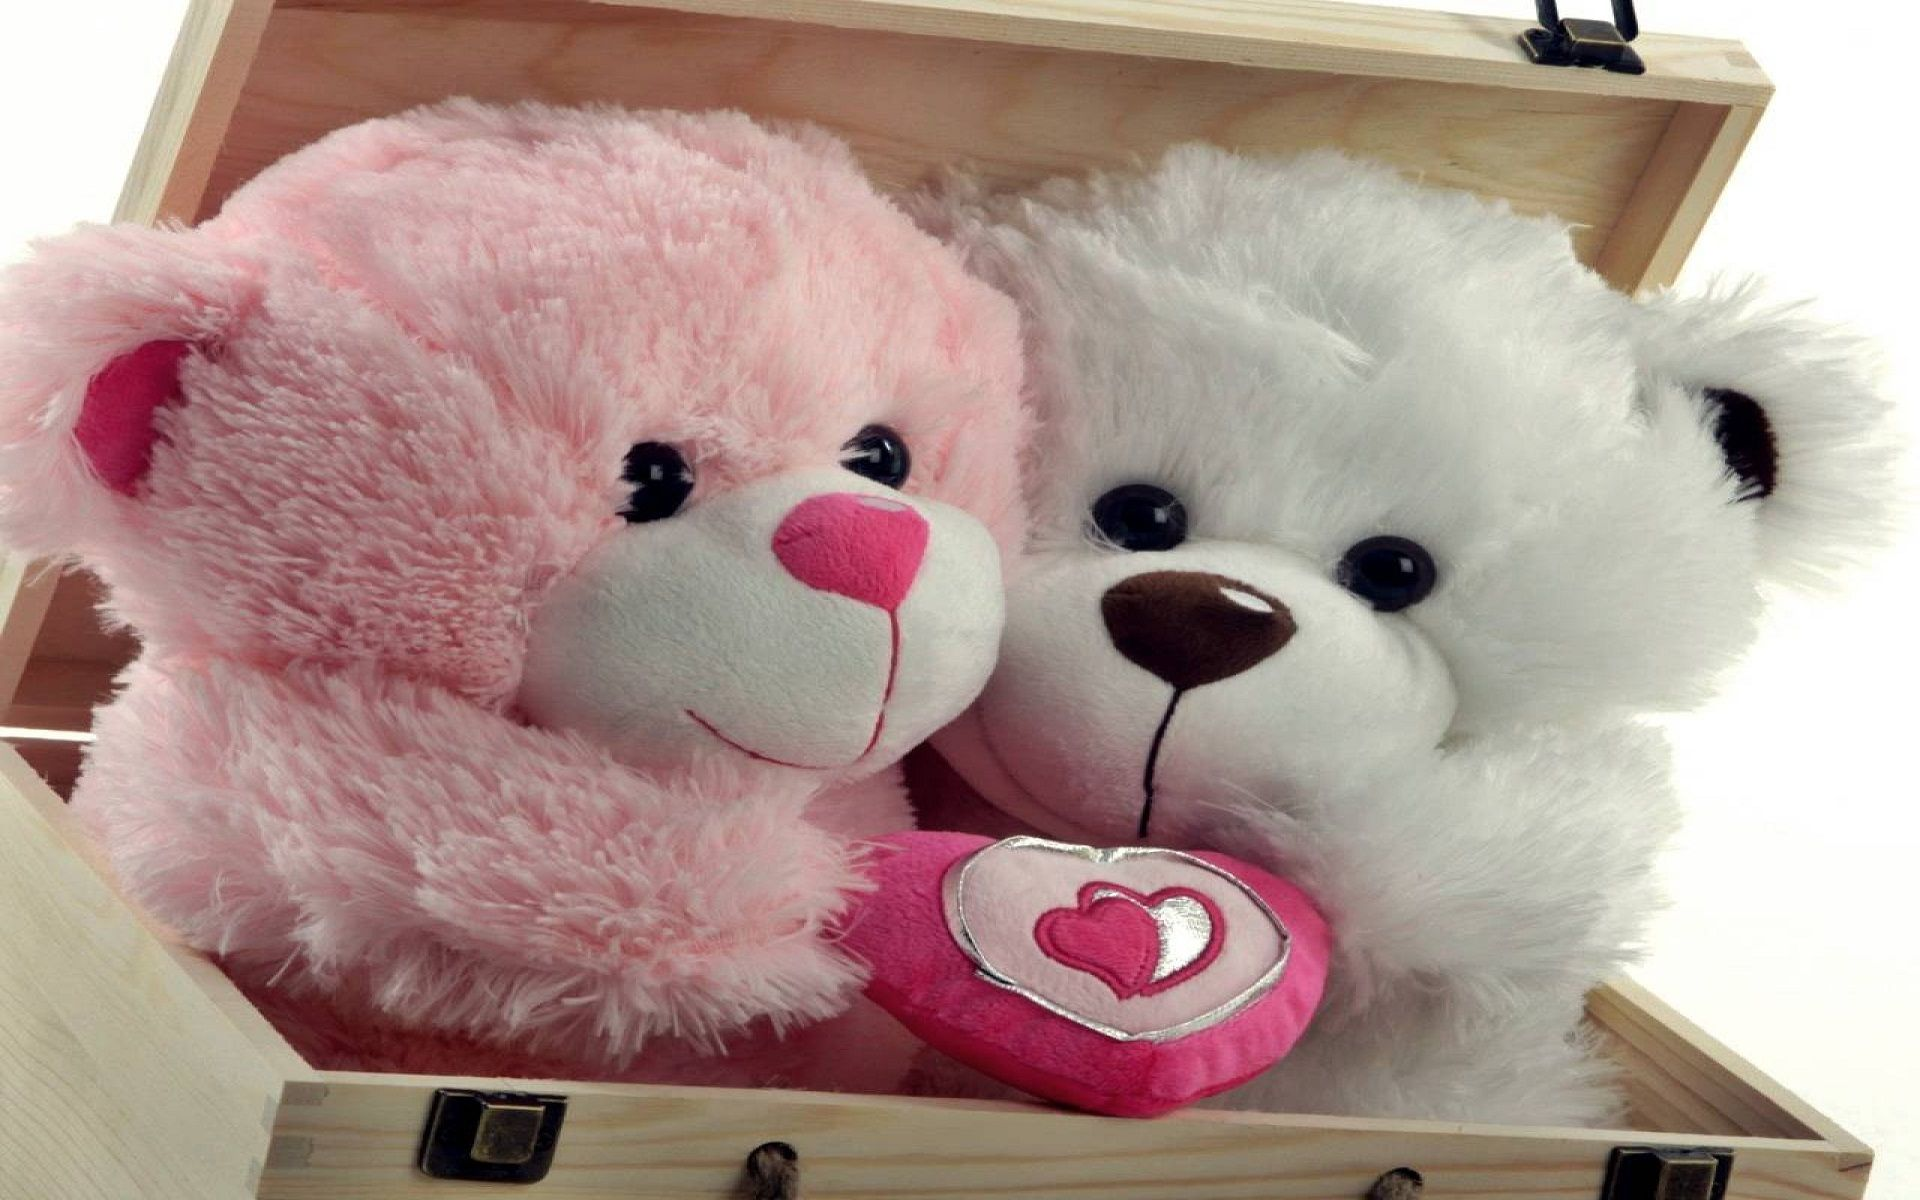 Cute Teddy Bears Love Couple And Hd Wallpaper On Pinterest